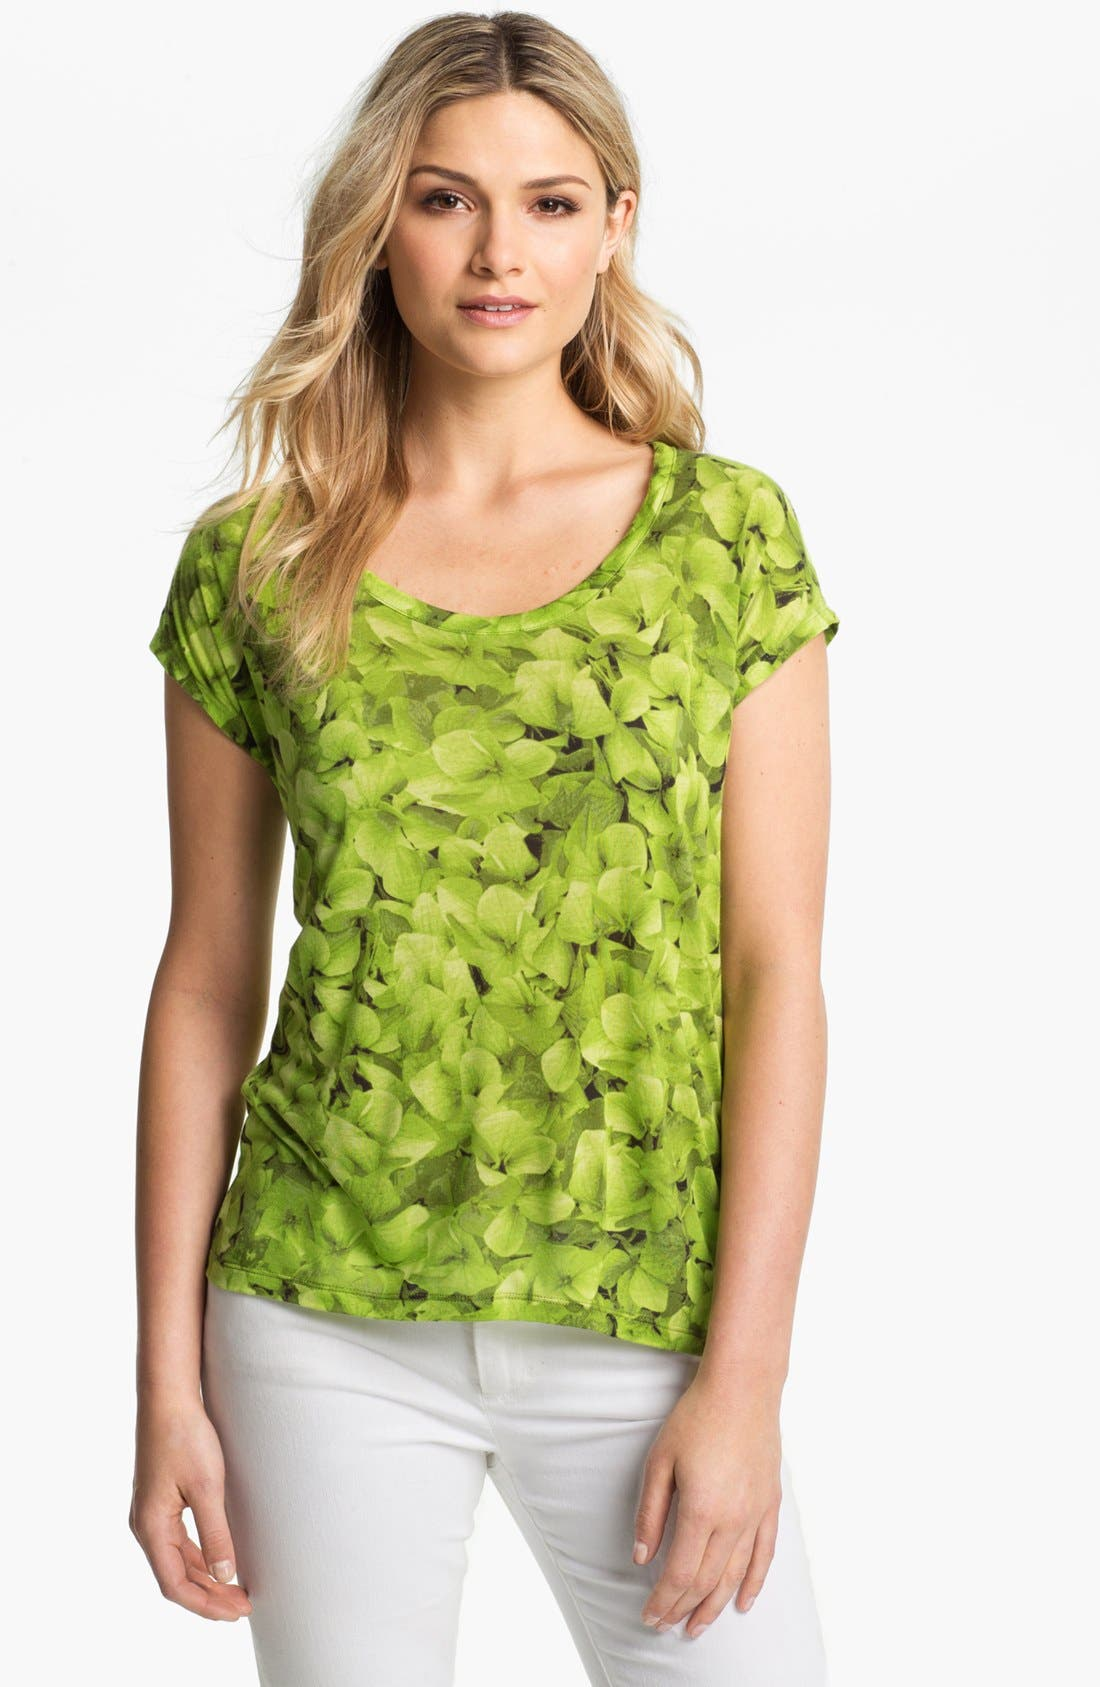 Alternate Image 1 Selected - MICHAEL Michael Kors Floral Print Top (Petite)